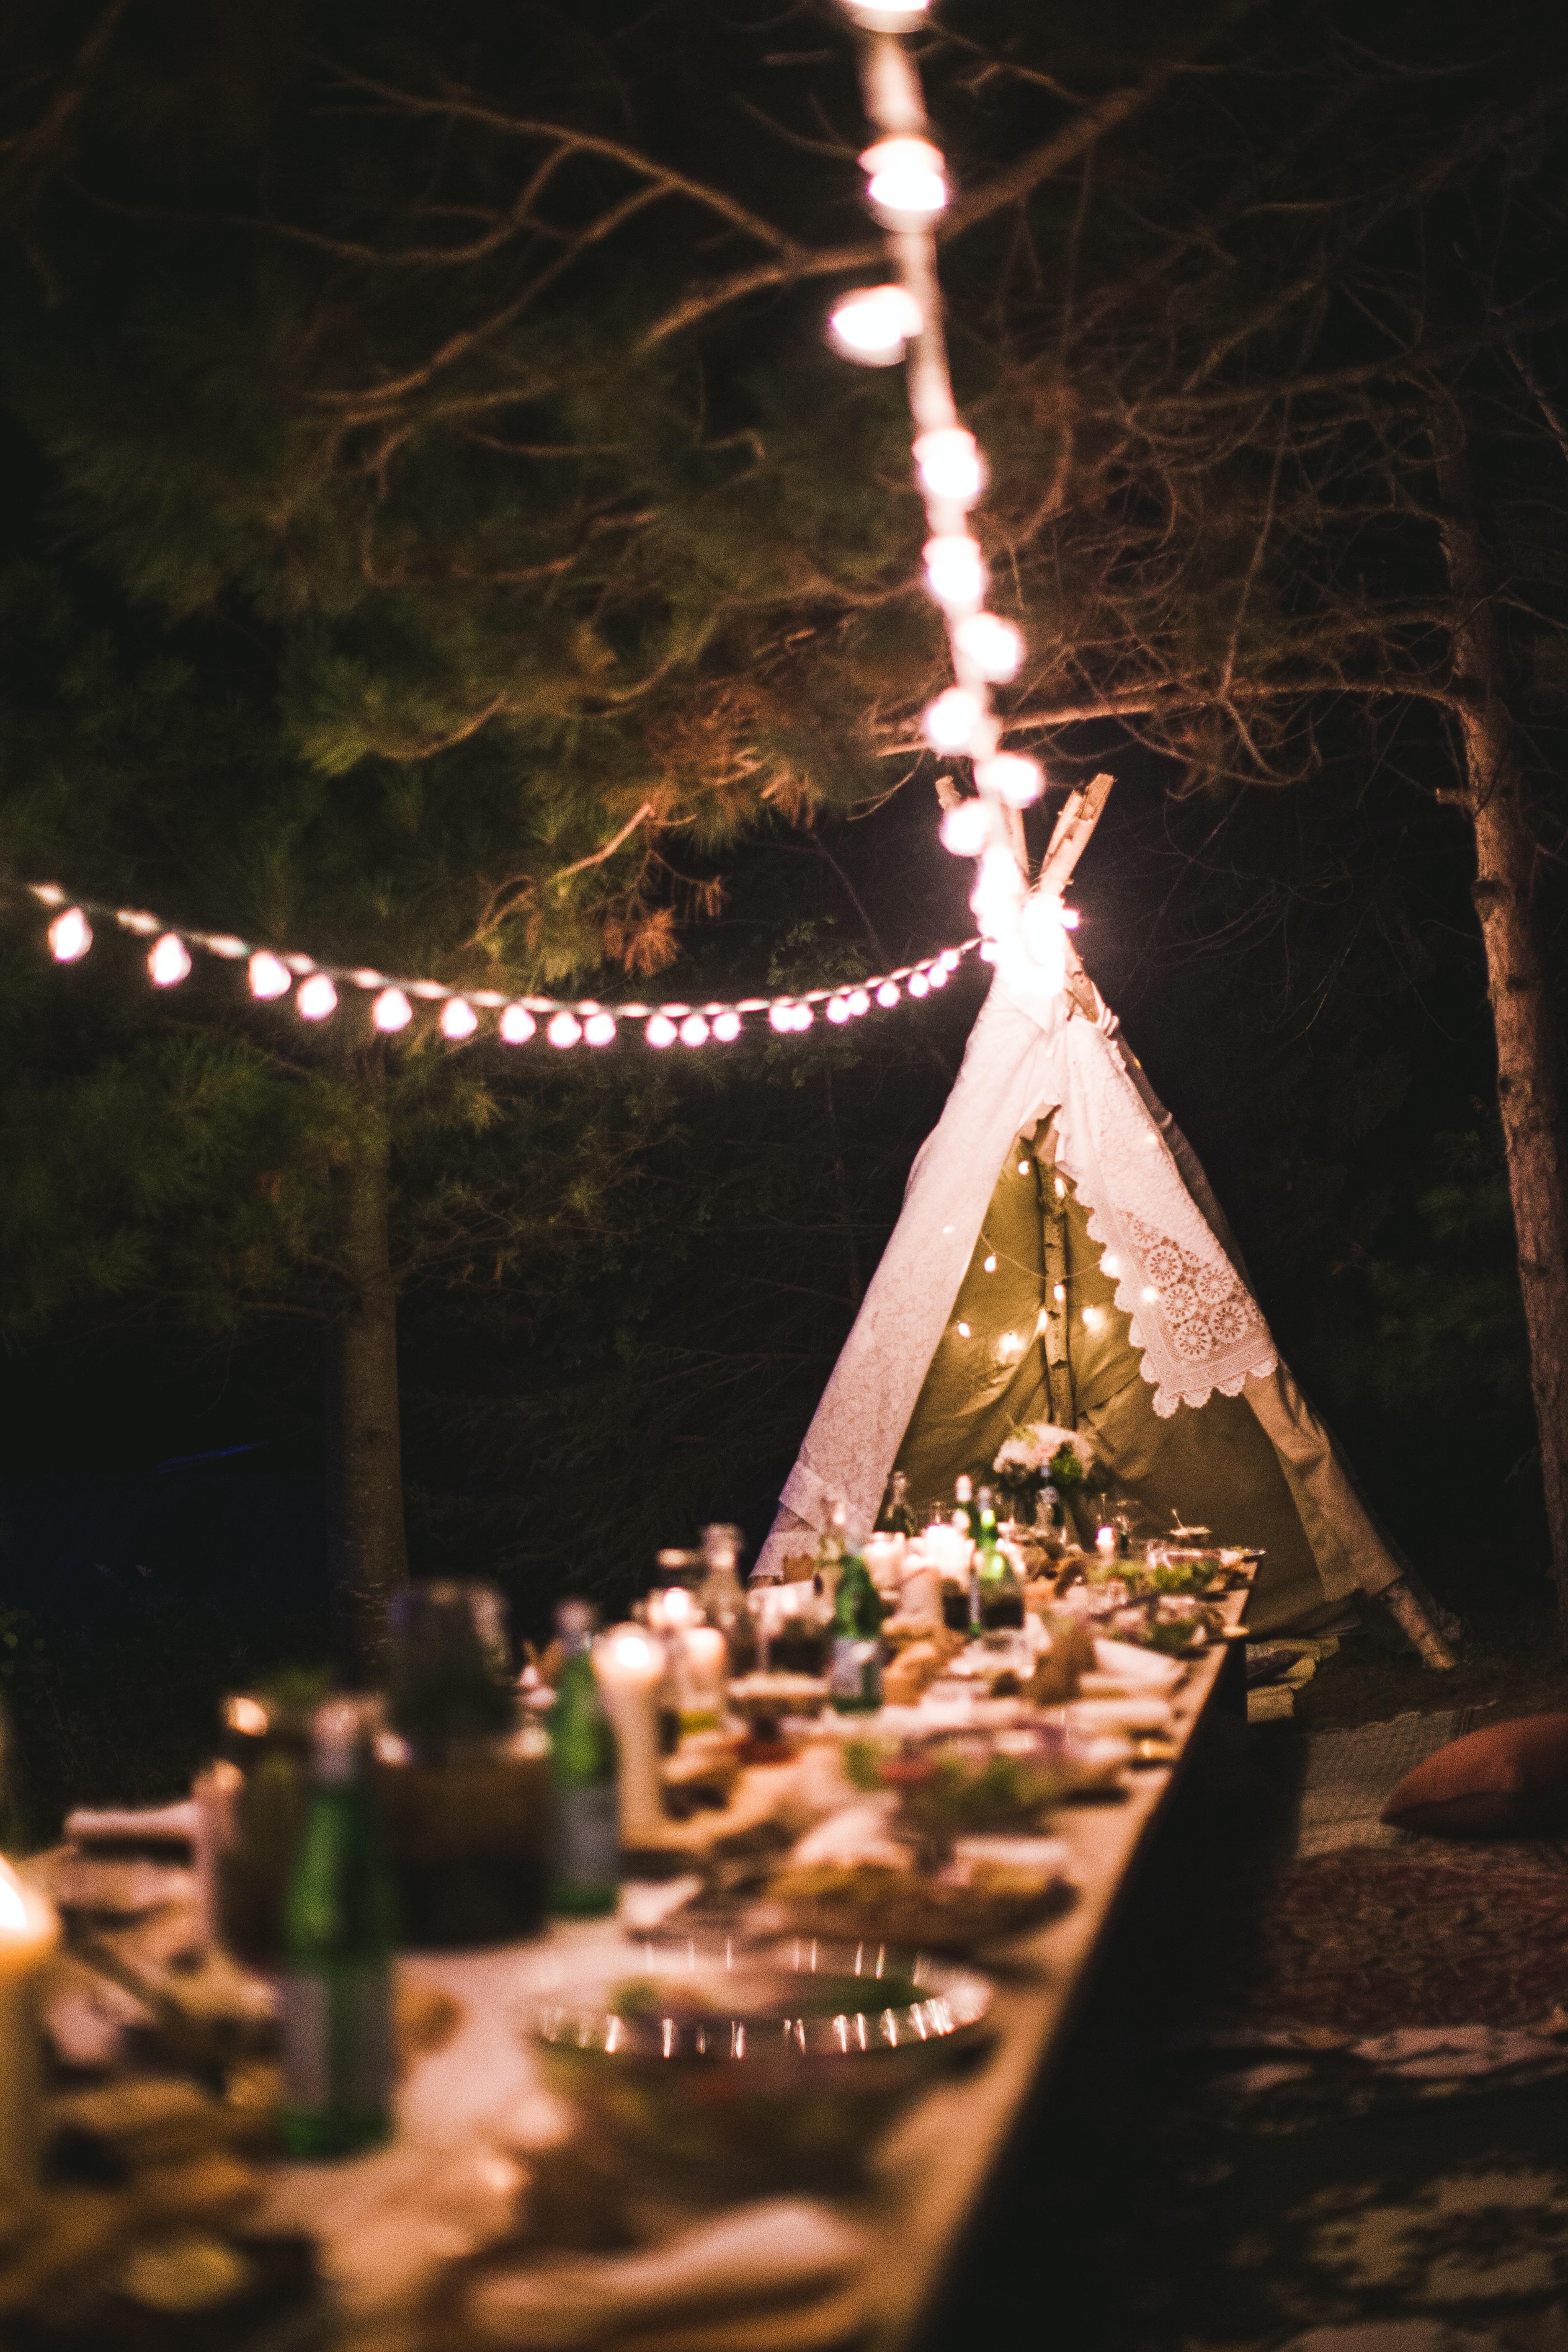 A large dinner table outside with special lighting.